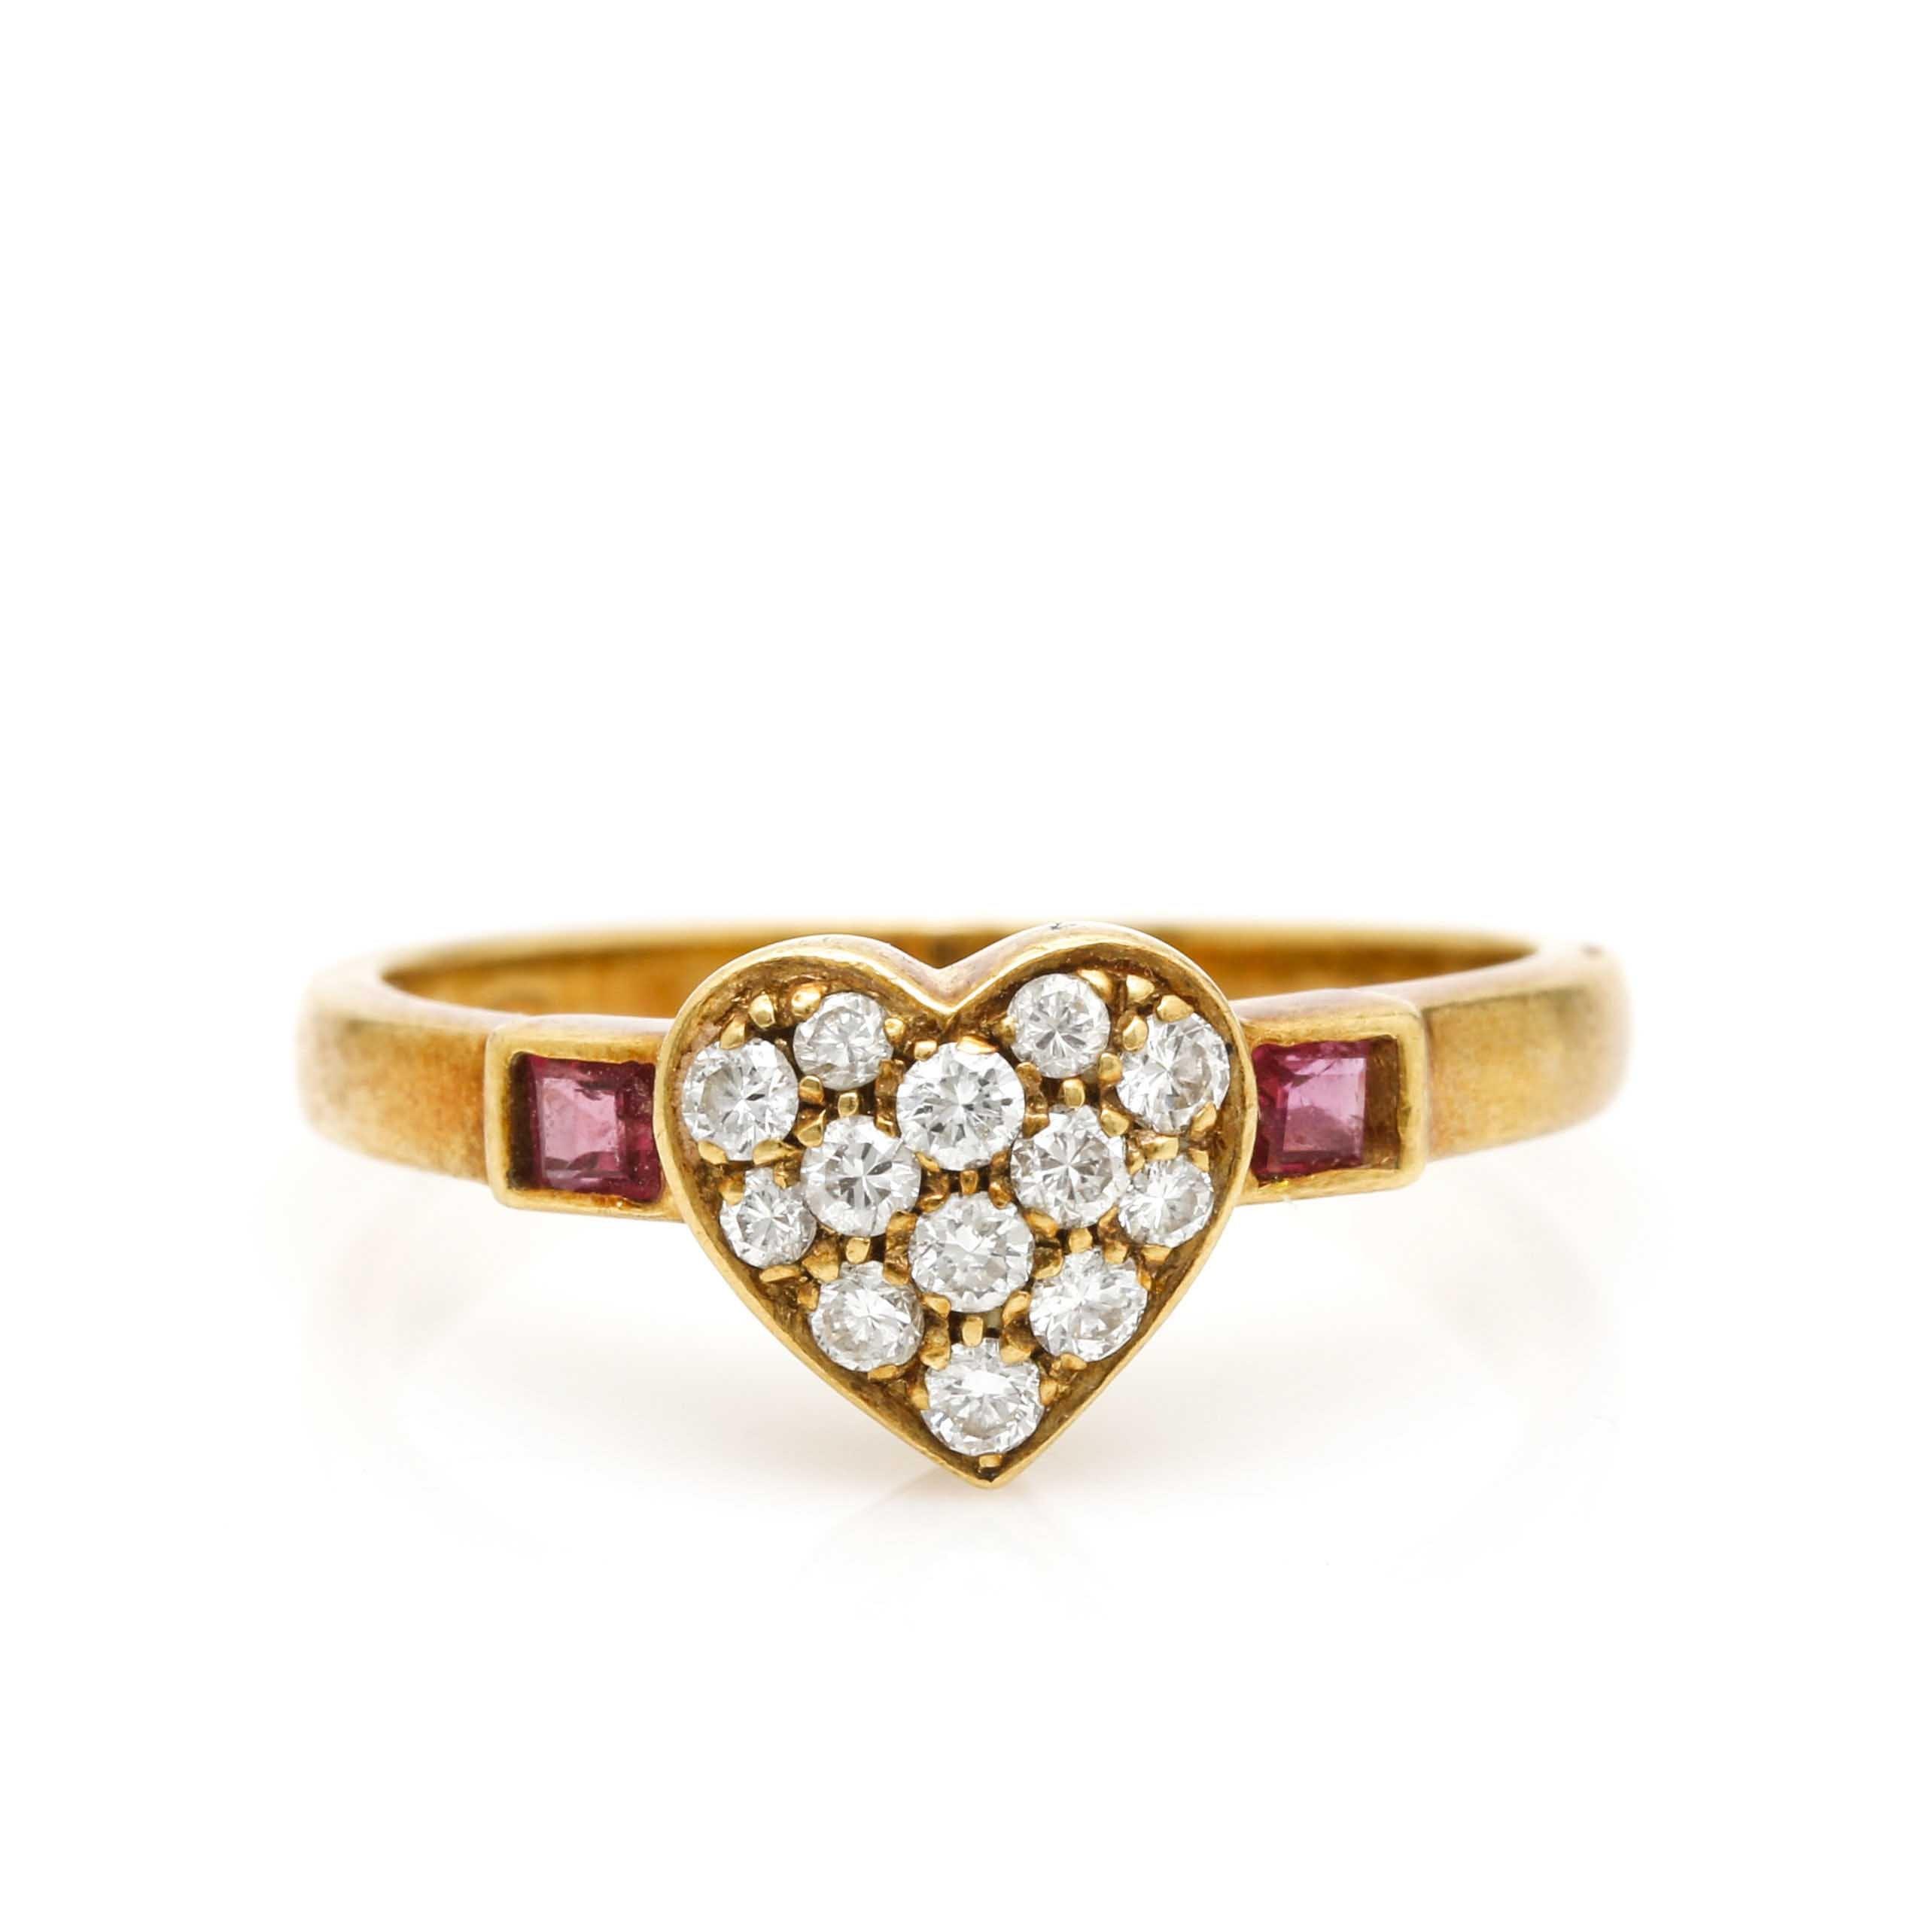 10K Yellow Gold Diamond and Ruby Heart Ring EBTH